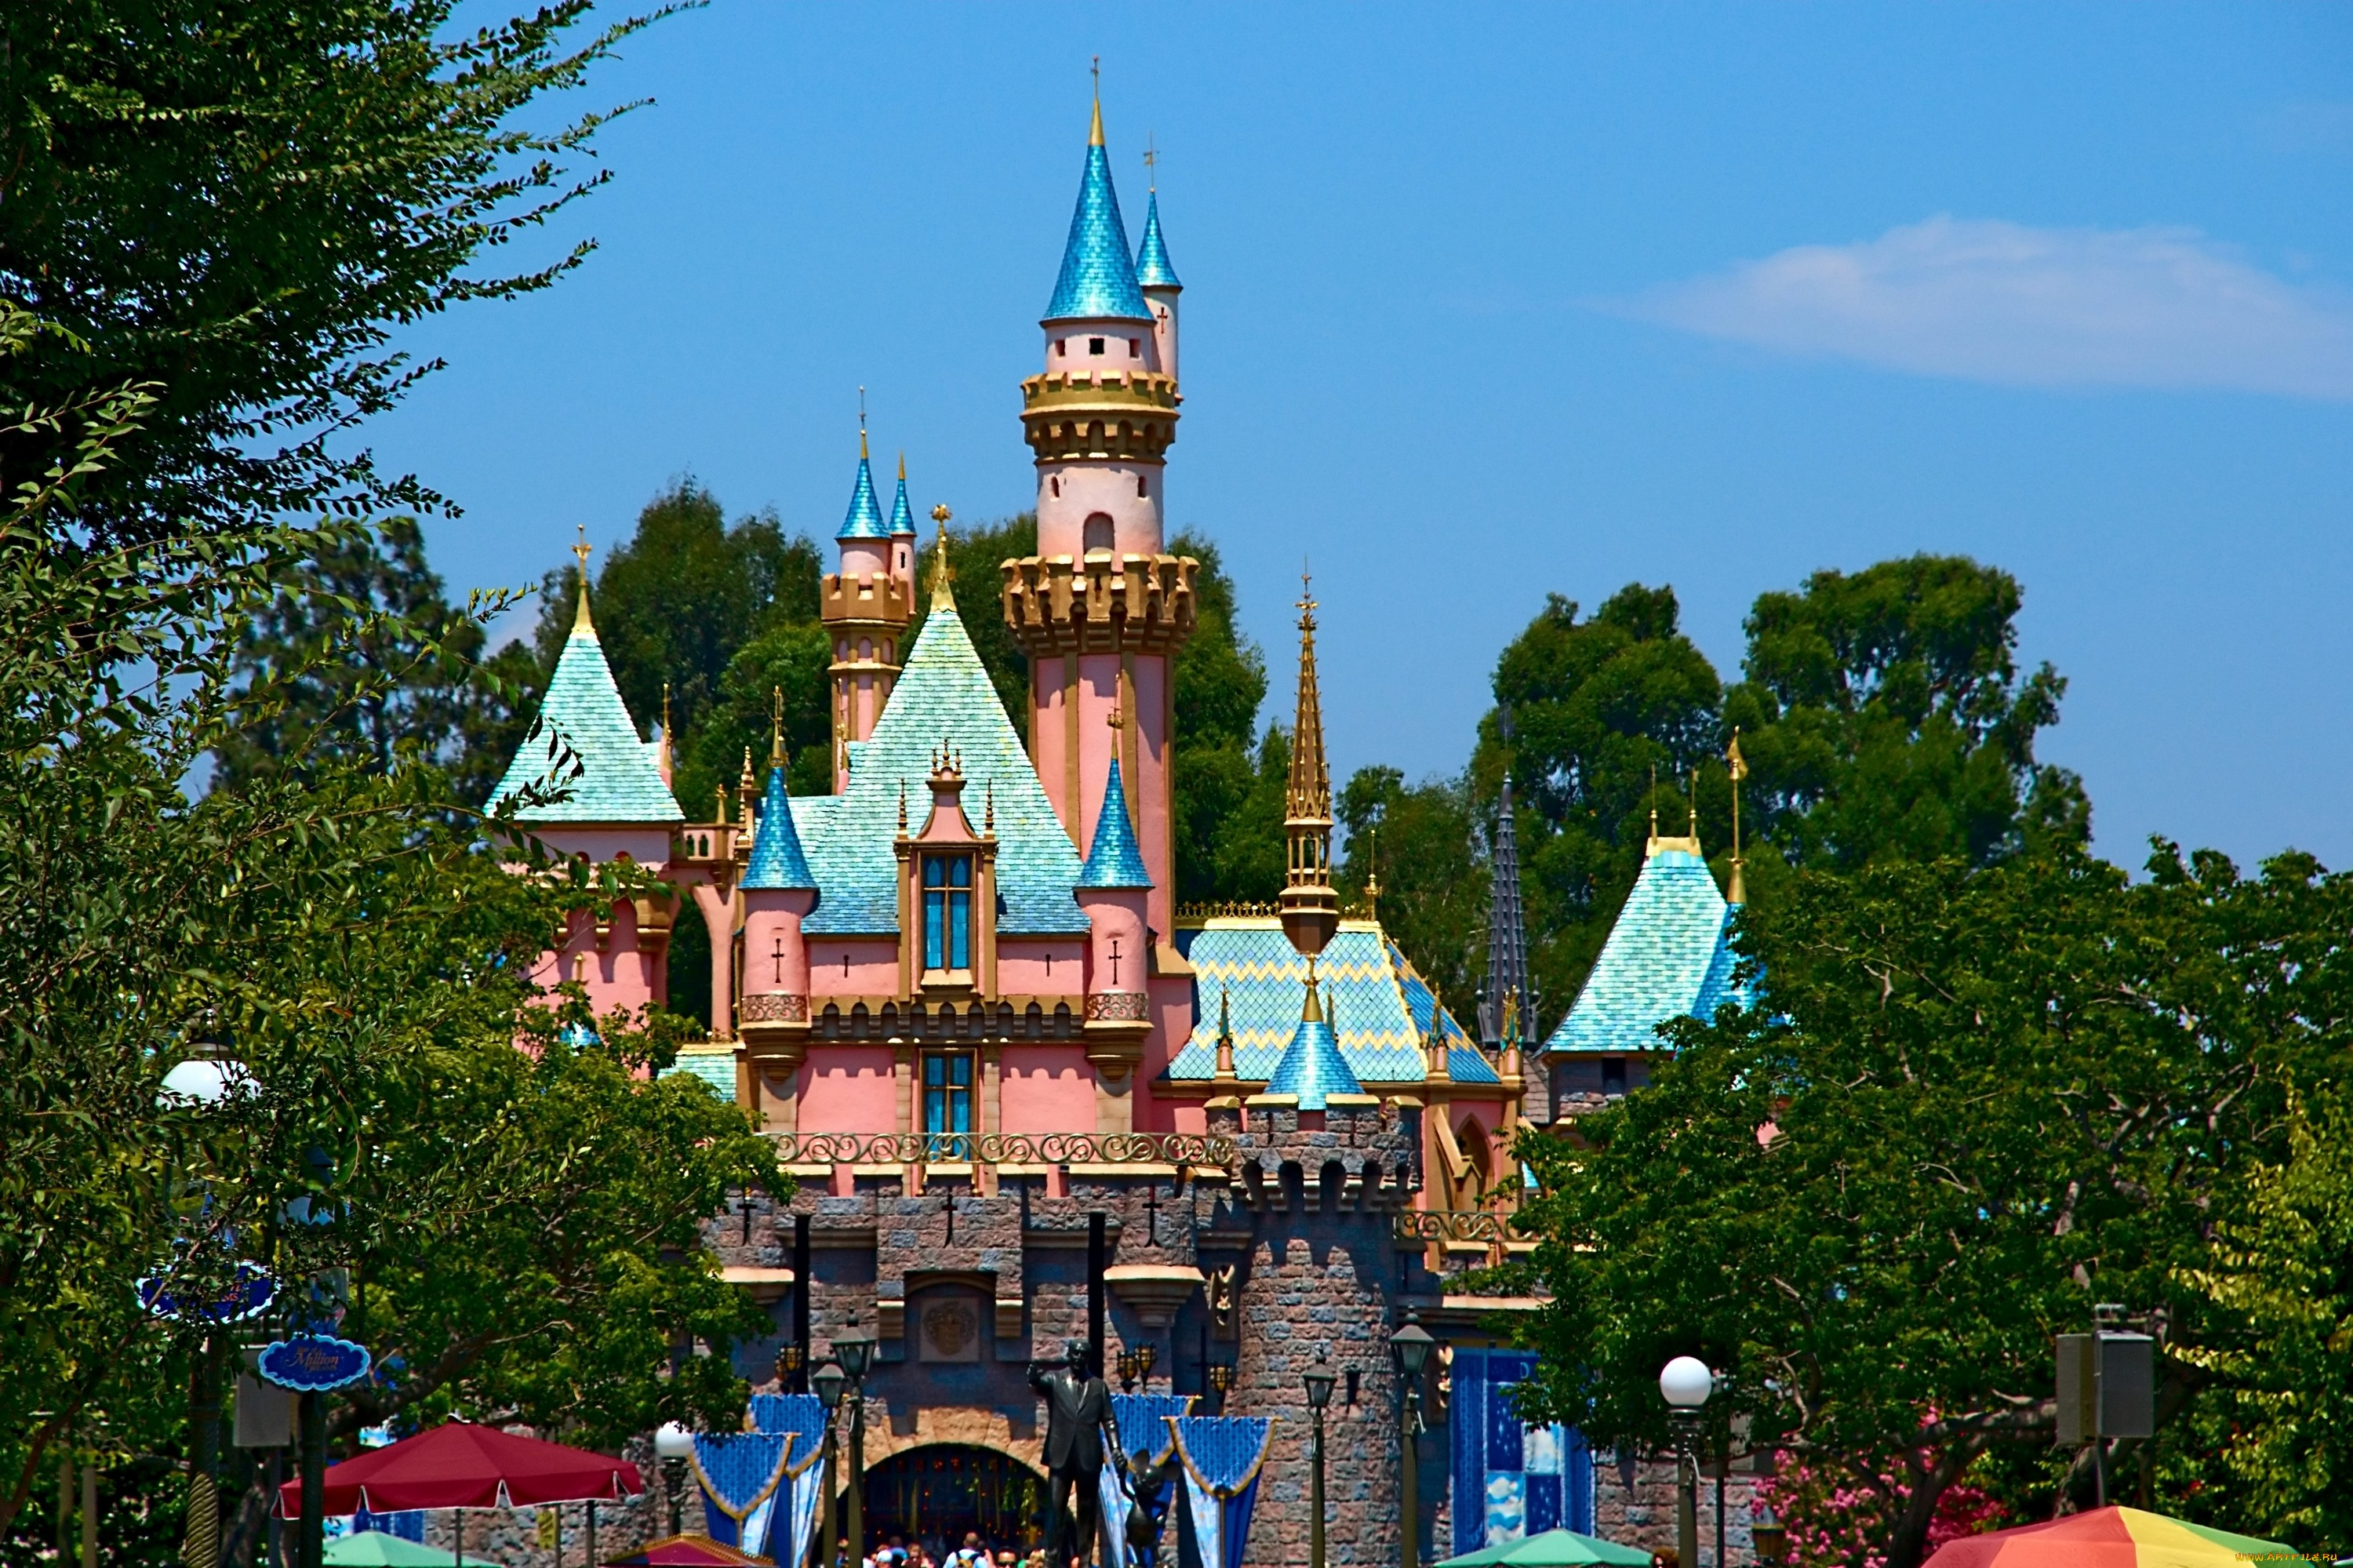 amusement park and euro disney essay View essay - the disney's america theme park essay example for free from mba 525 at university of texas (/) the disneys america theme park essay.